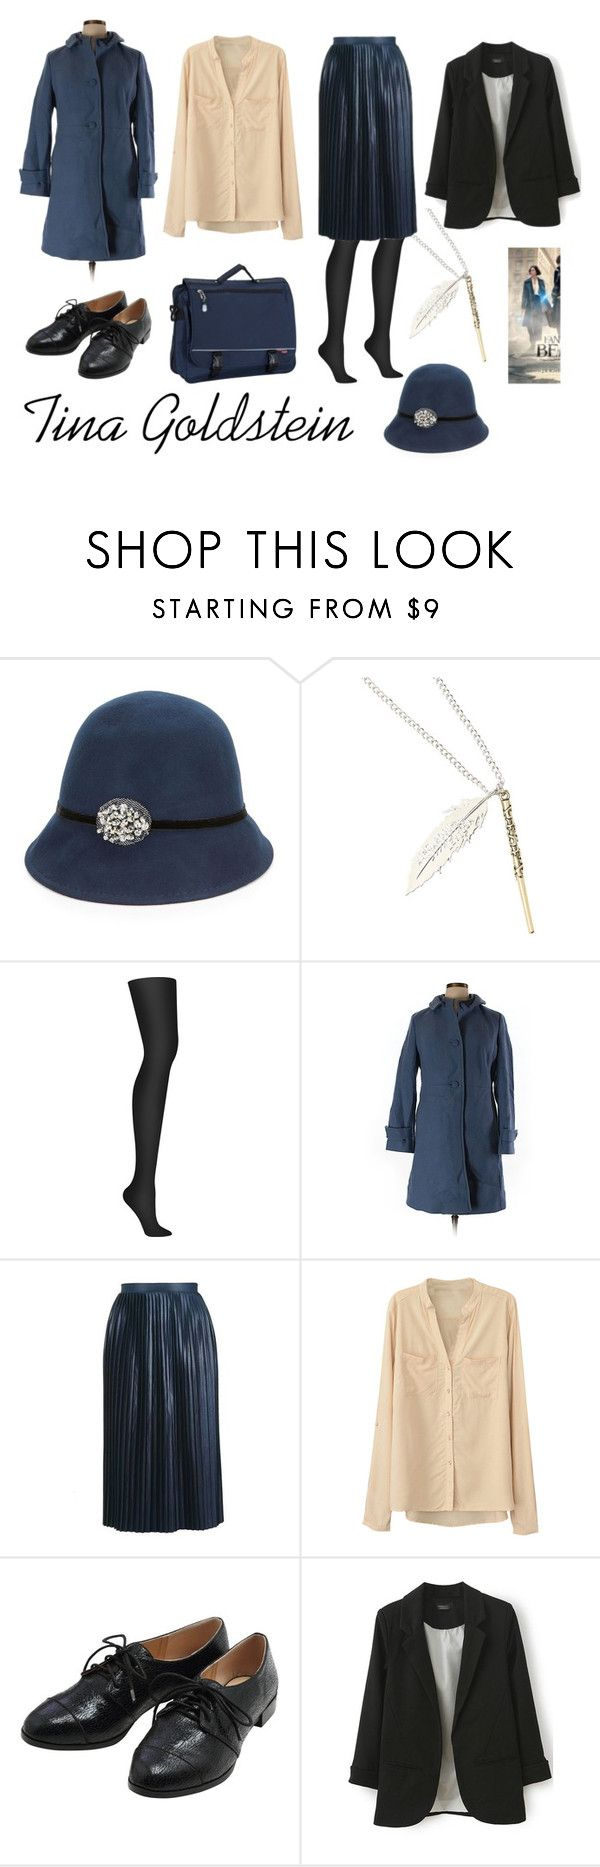 """Tina Goldstein"" by jhmb on Polyvore featuring August Hat, Warner Bros., DKNY, Talbots, Topshop, M&Co and CalPak"